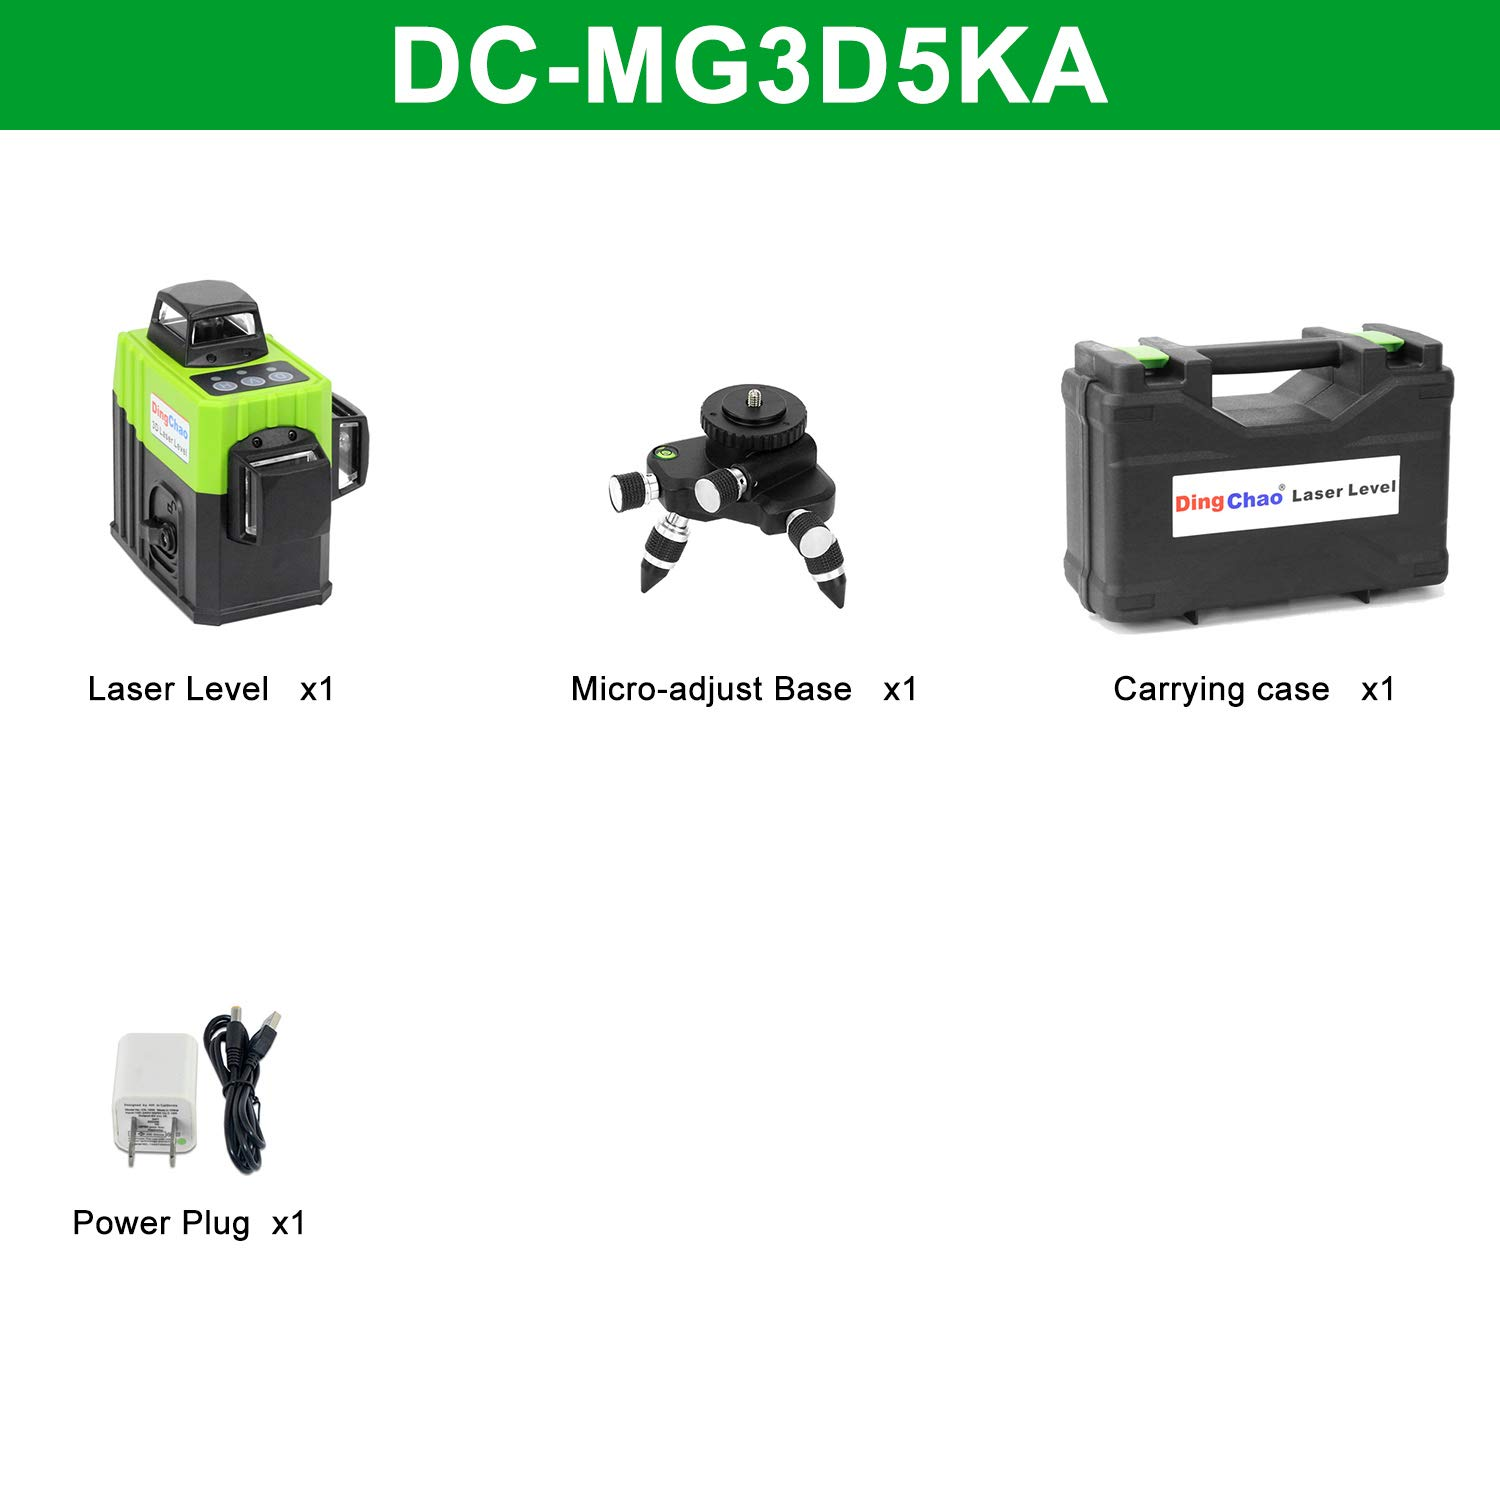 Dingchao Self-Leveling Three-Plane 3 x 360 Green Line Laser Level,with Micro-Adjust / 360 Degree Pivoting Base, Hard Carrying Case,Power Plug Adapter,Multi-functional Laser Leveler Layout Laser Tools by DINGCHAO (Image #7)